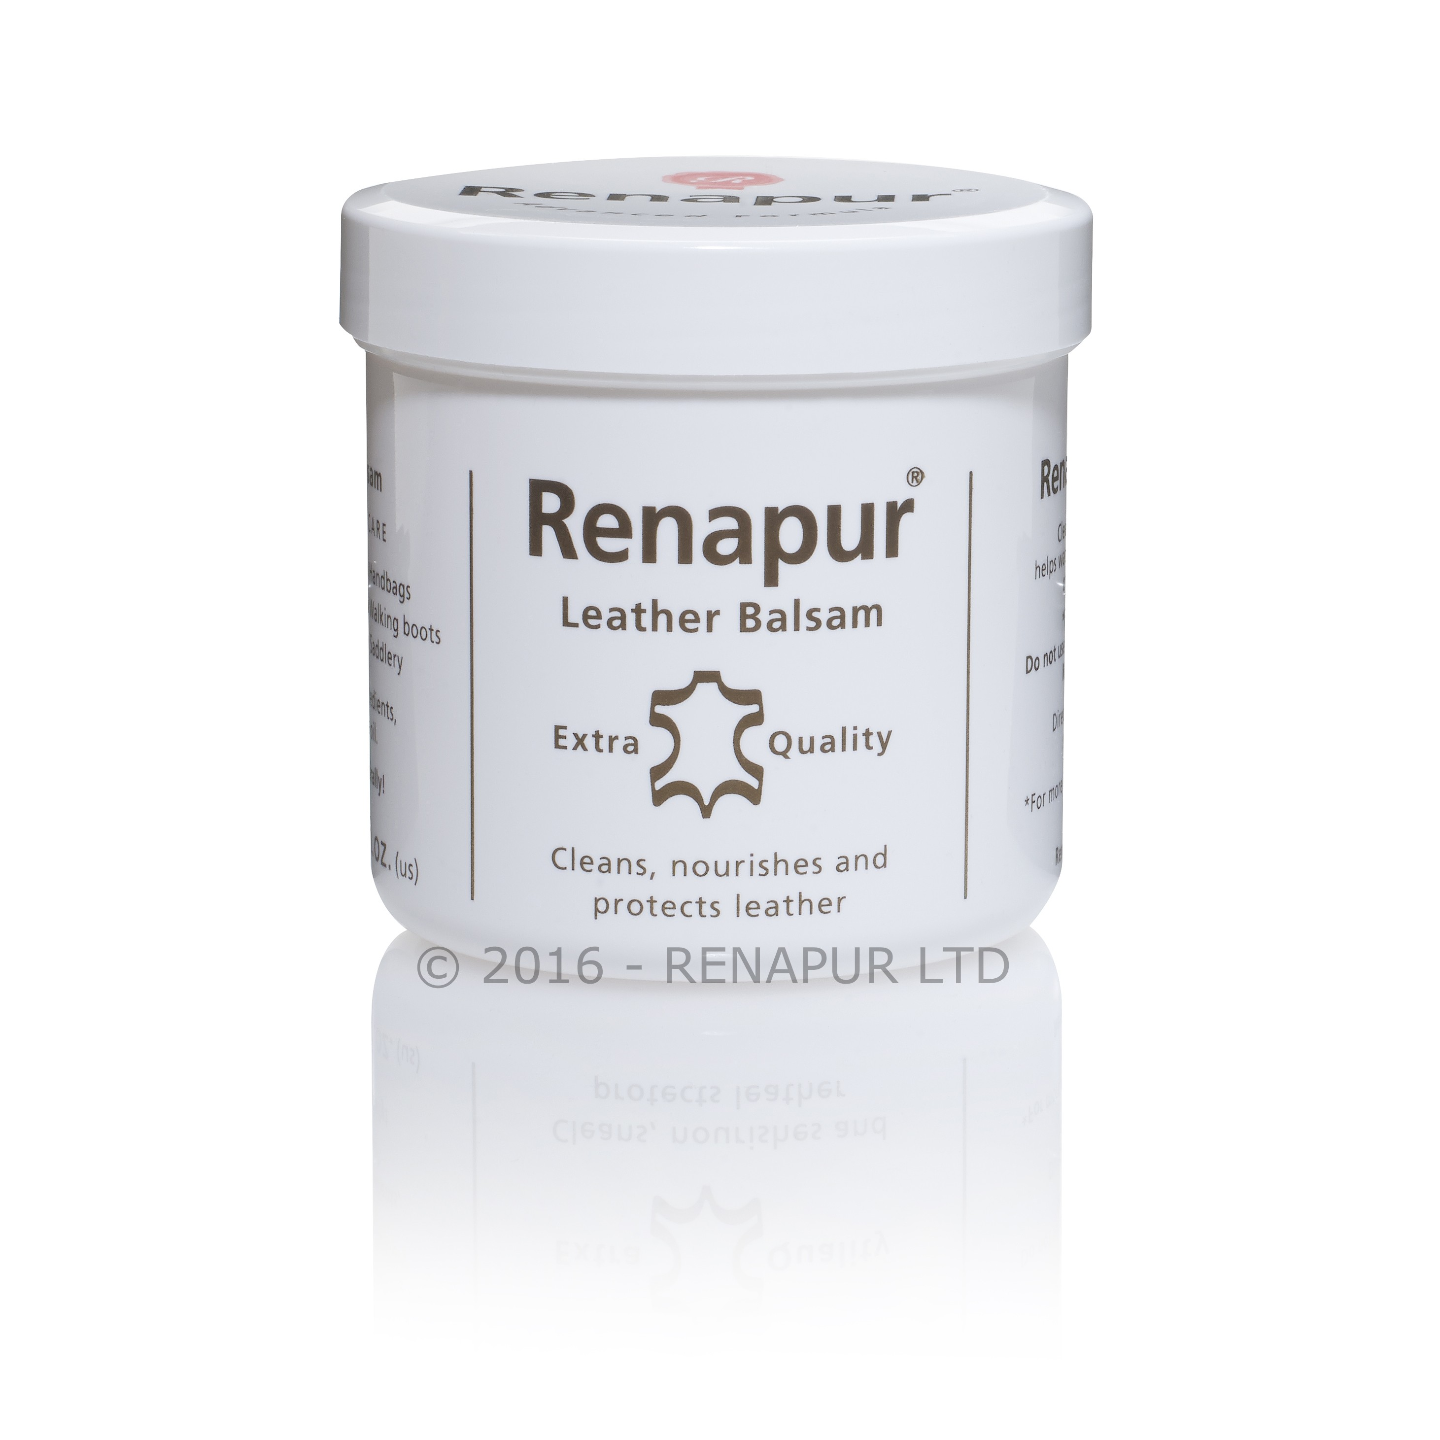 Renapur Leather Balsam 200 ml - Original - Cleaner, Conditioner, Water Repellent - All Leathers including Shoes, Handbags, Garments, Furniture, Automotive Leathers - From UK